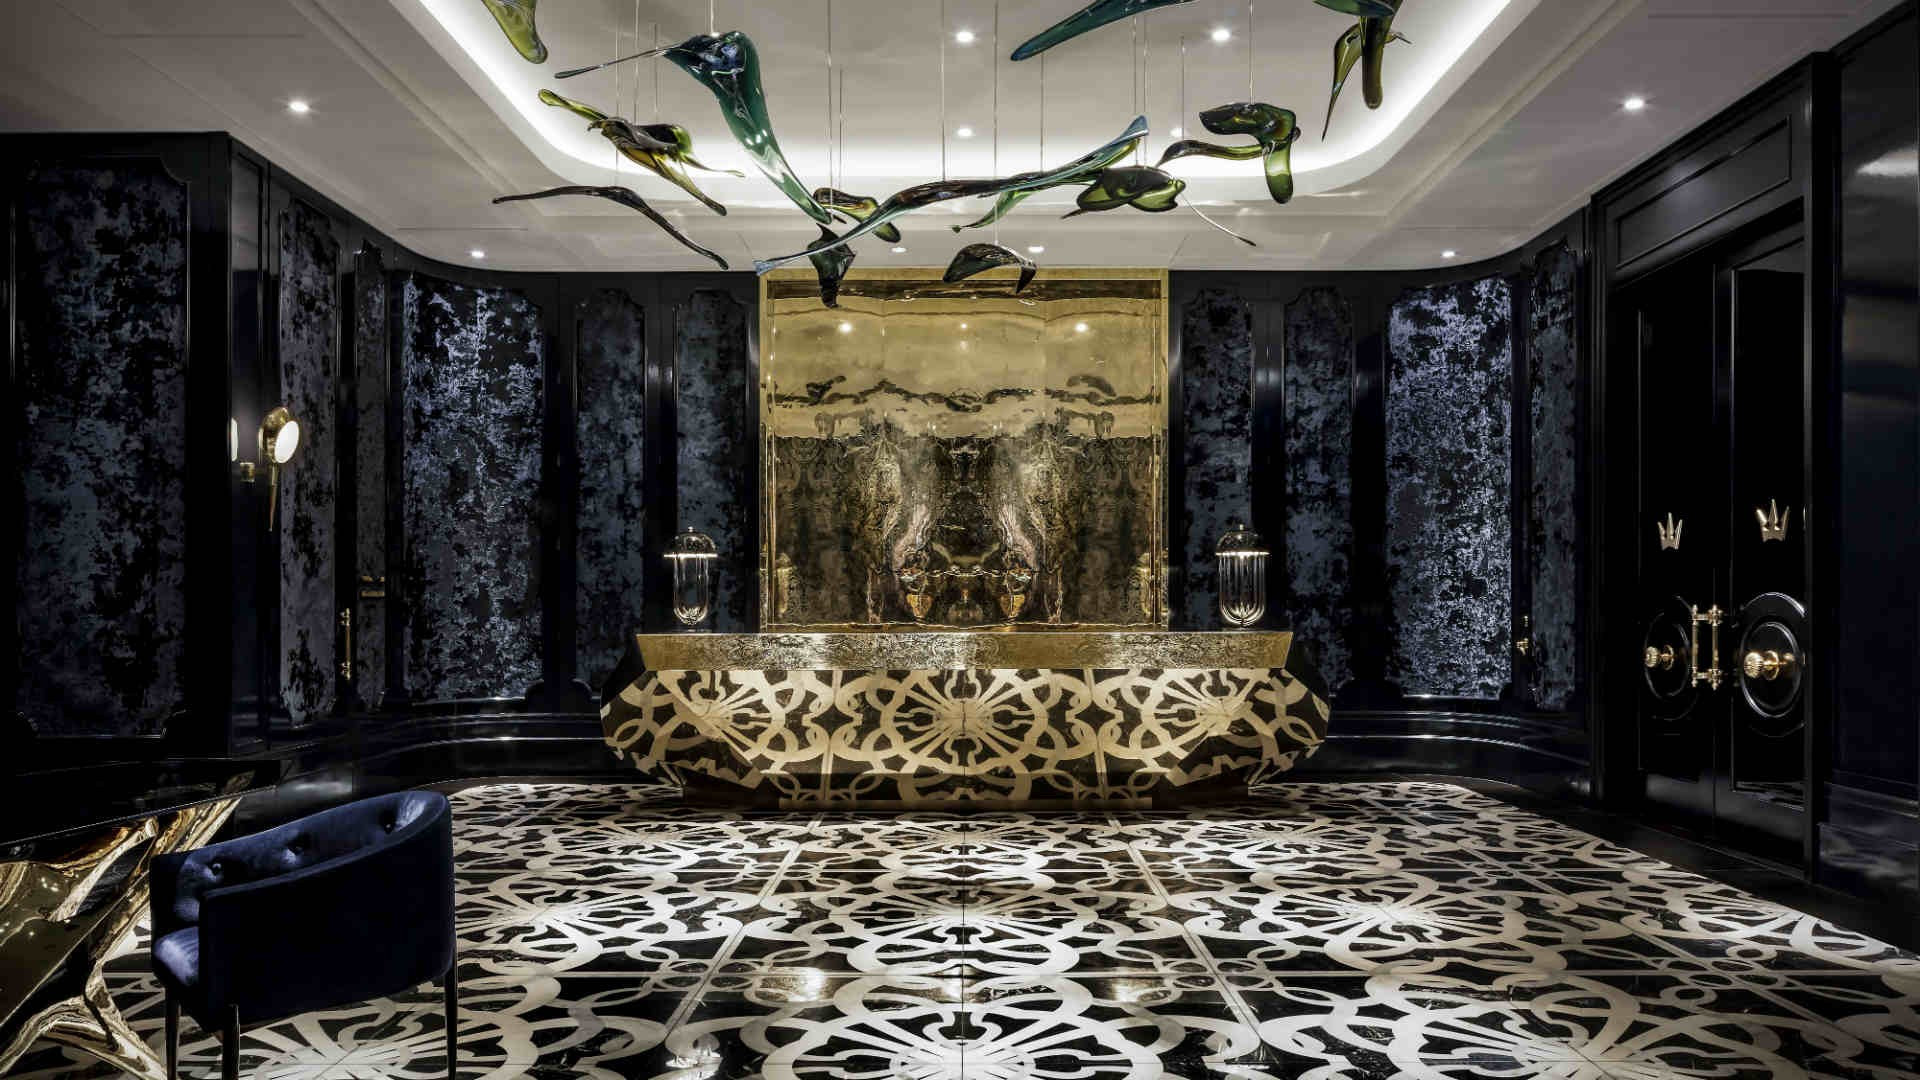 Best hotels Toronto staycation | The Bisha Hotel main entrance lobby